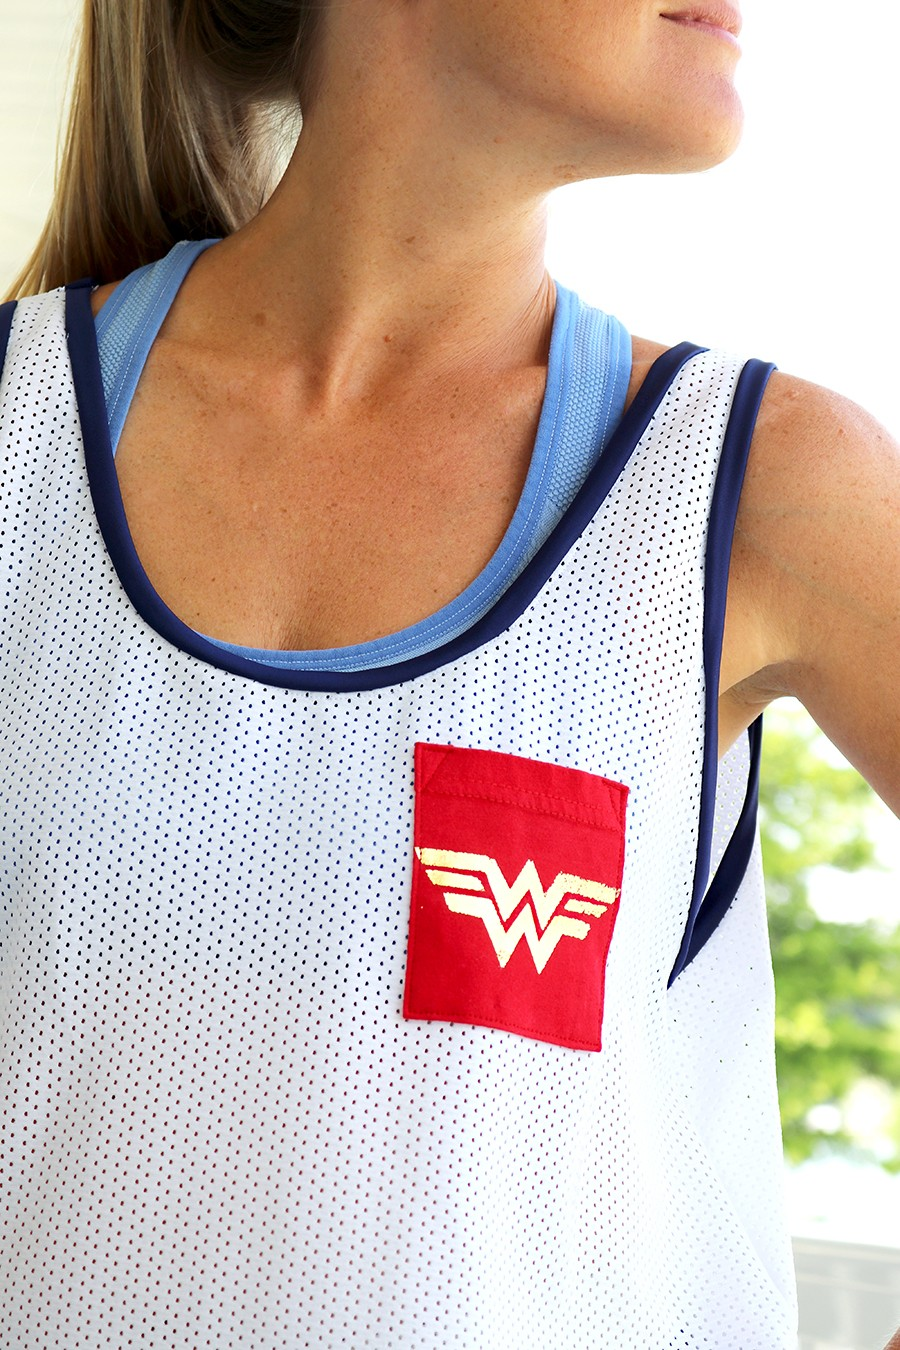 MAKE THIS: Wonder Woman Tank Top DIY